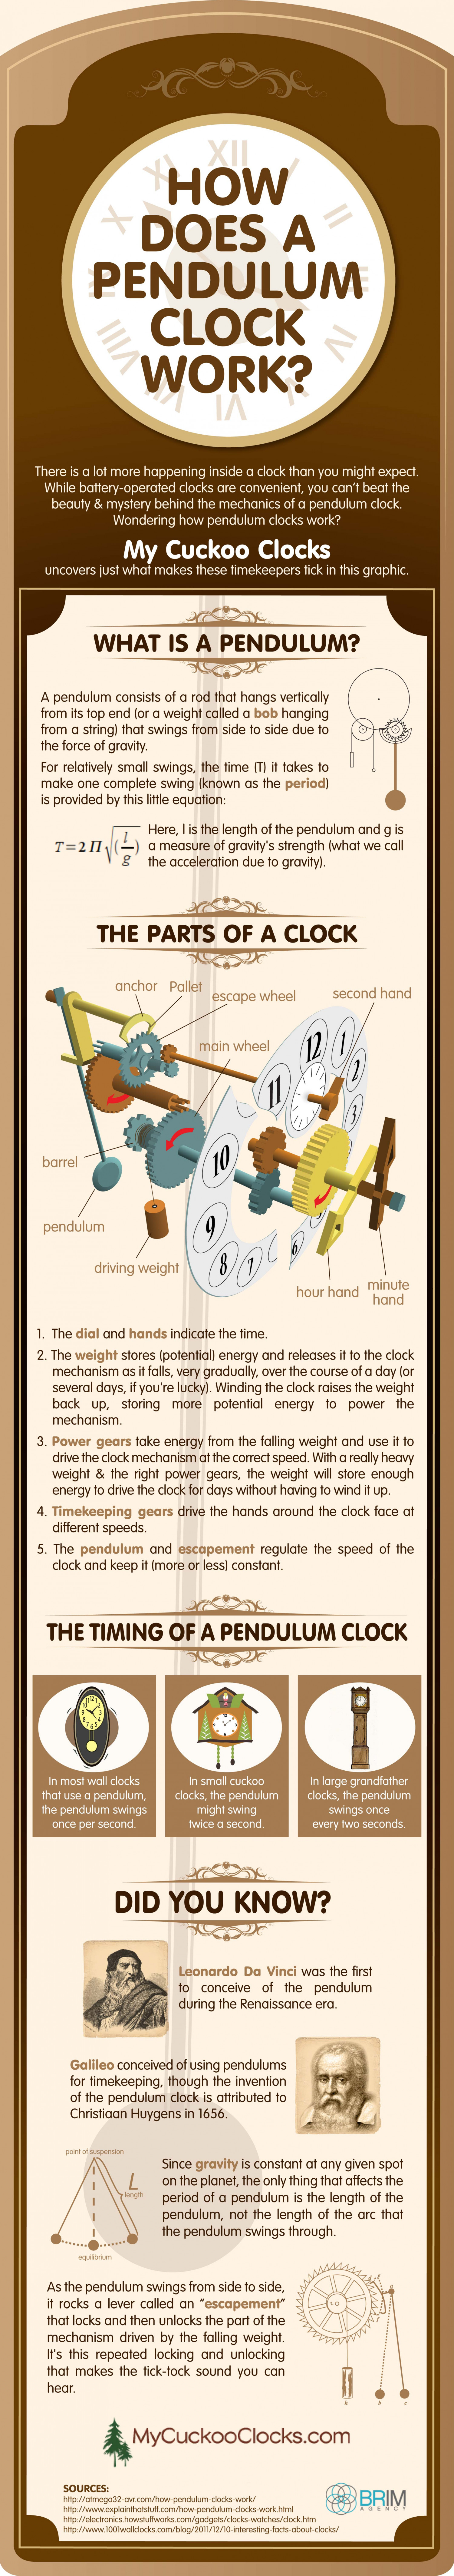 How Does a Pendulum Clock Work? Infographic